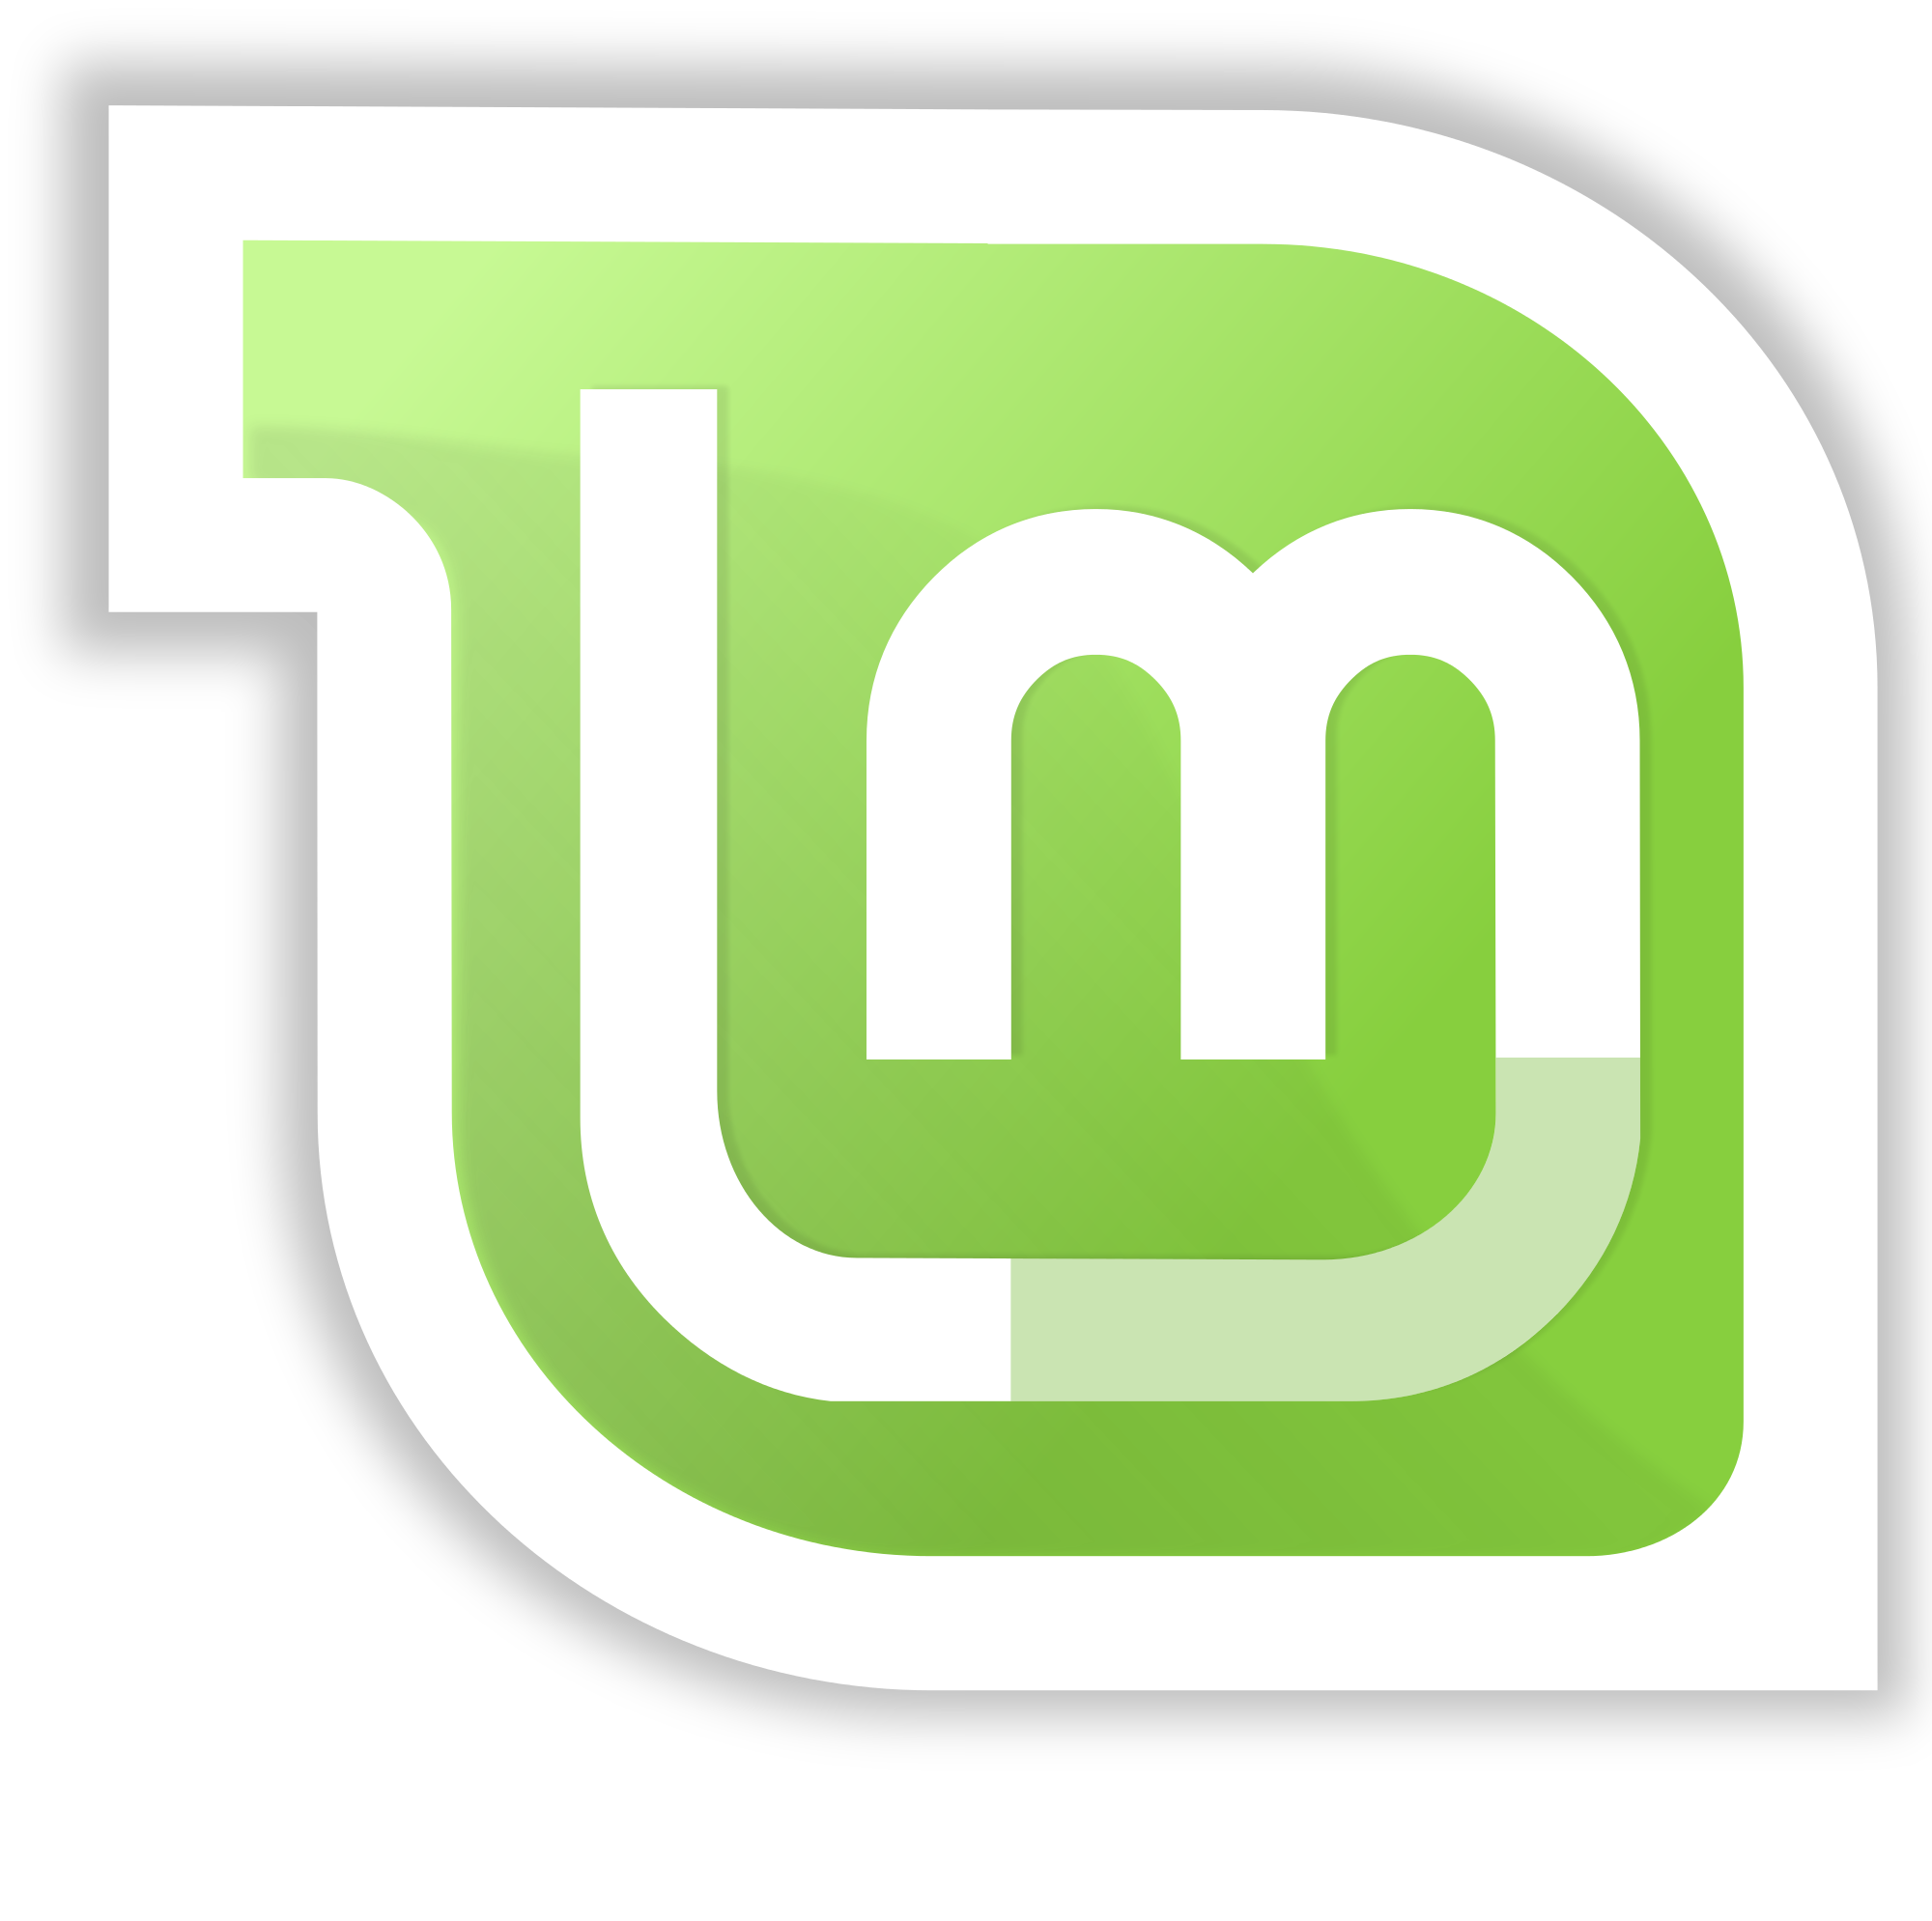 File without wordmark svg. Linux mint logo png clip art freeuse library